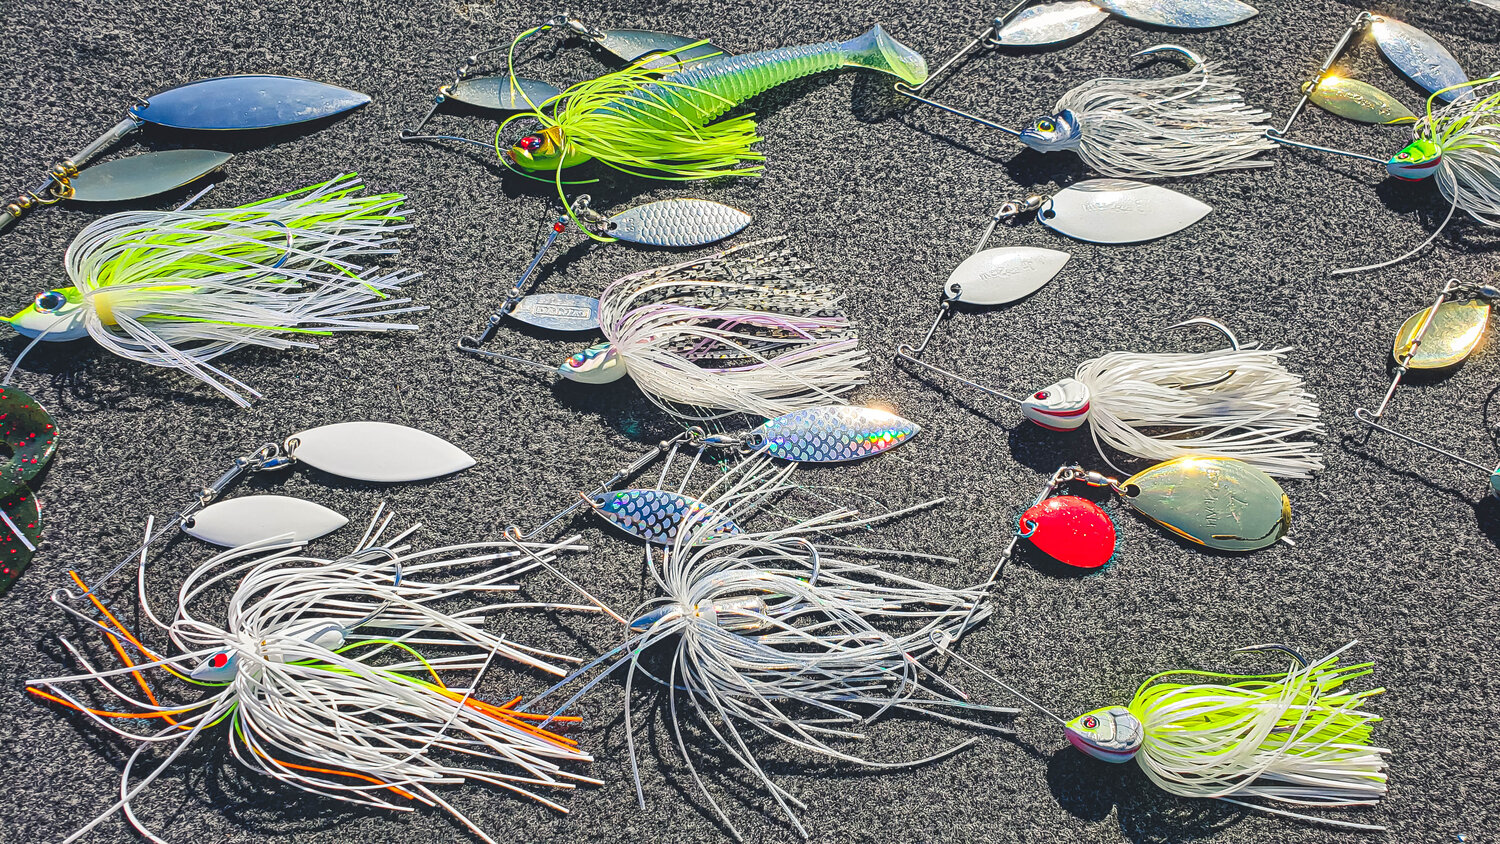 The Best Chatterbait And Spinnerbaits Tricks You Ve Never Tried Tactical Bassin Bass Fishing Blog